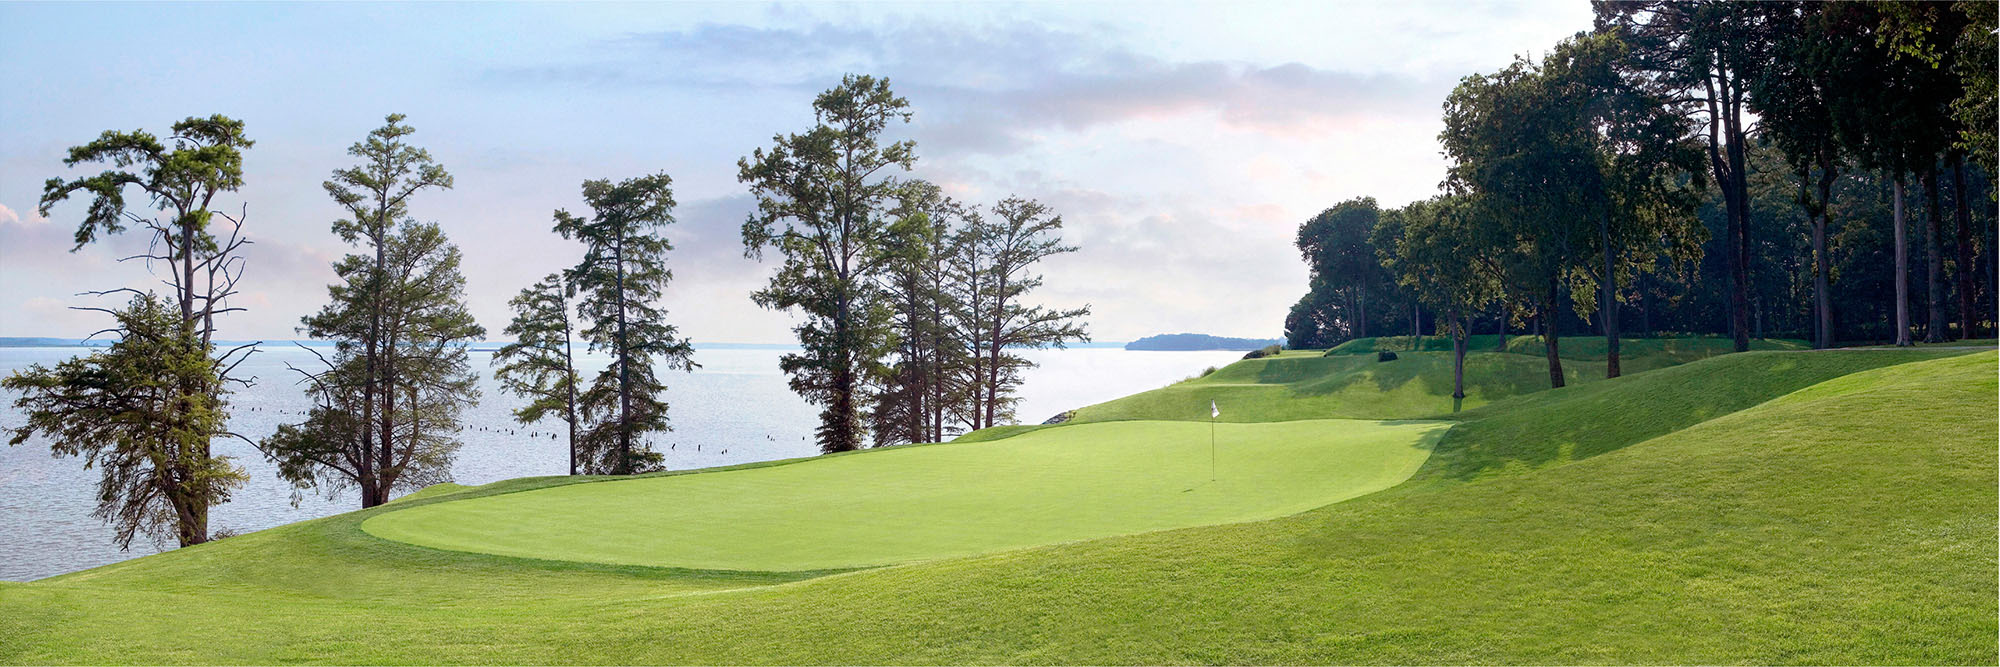 Golf Course Image - Kingsmill Resort & Spa No. 17